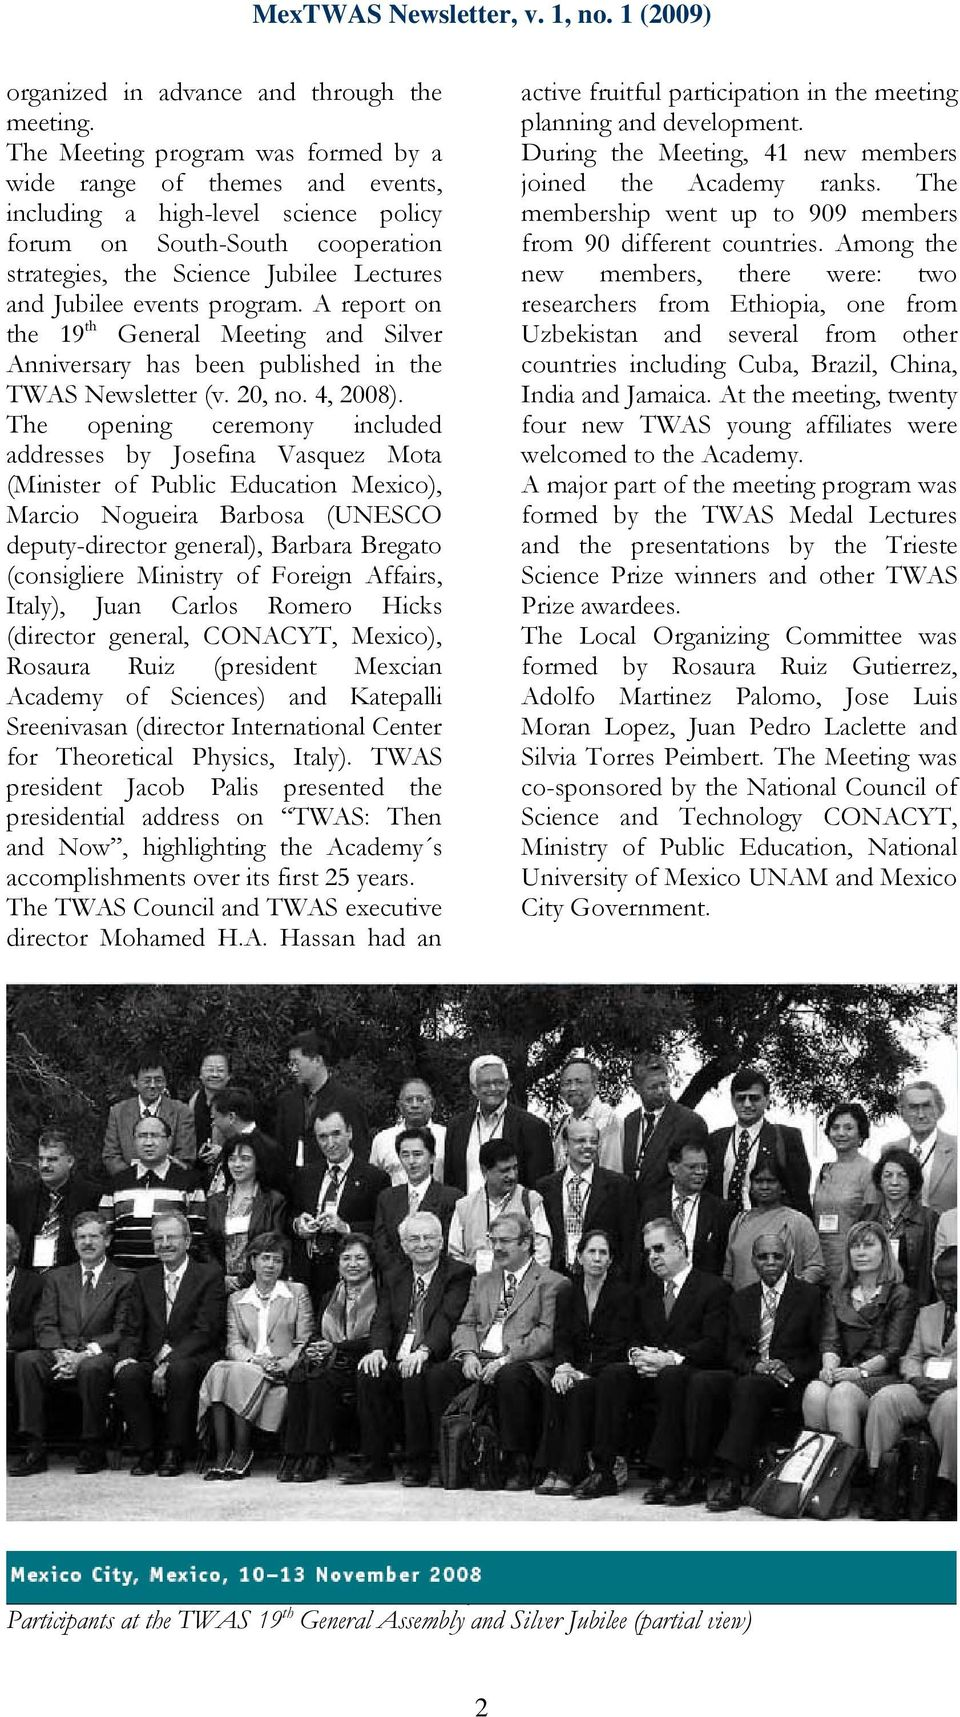 program. A report on the 19 th General Meeting and Silver Anniversary has been published in the TWAS Newsletter (v. 20, no. 4, 2008).